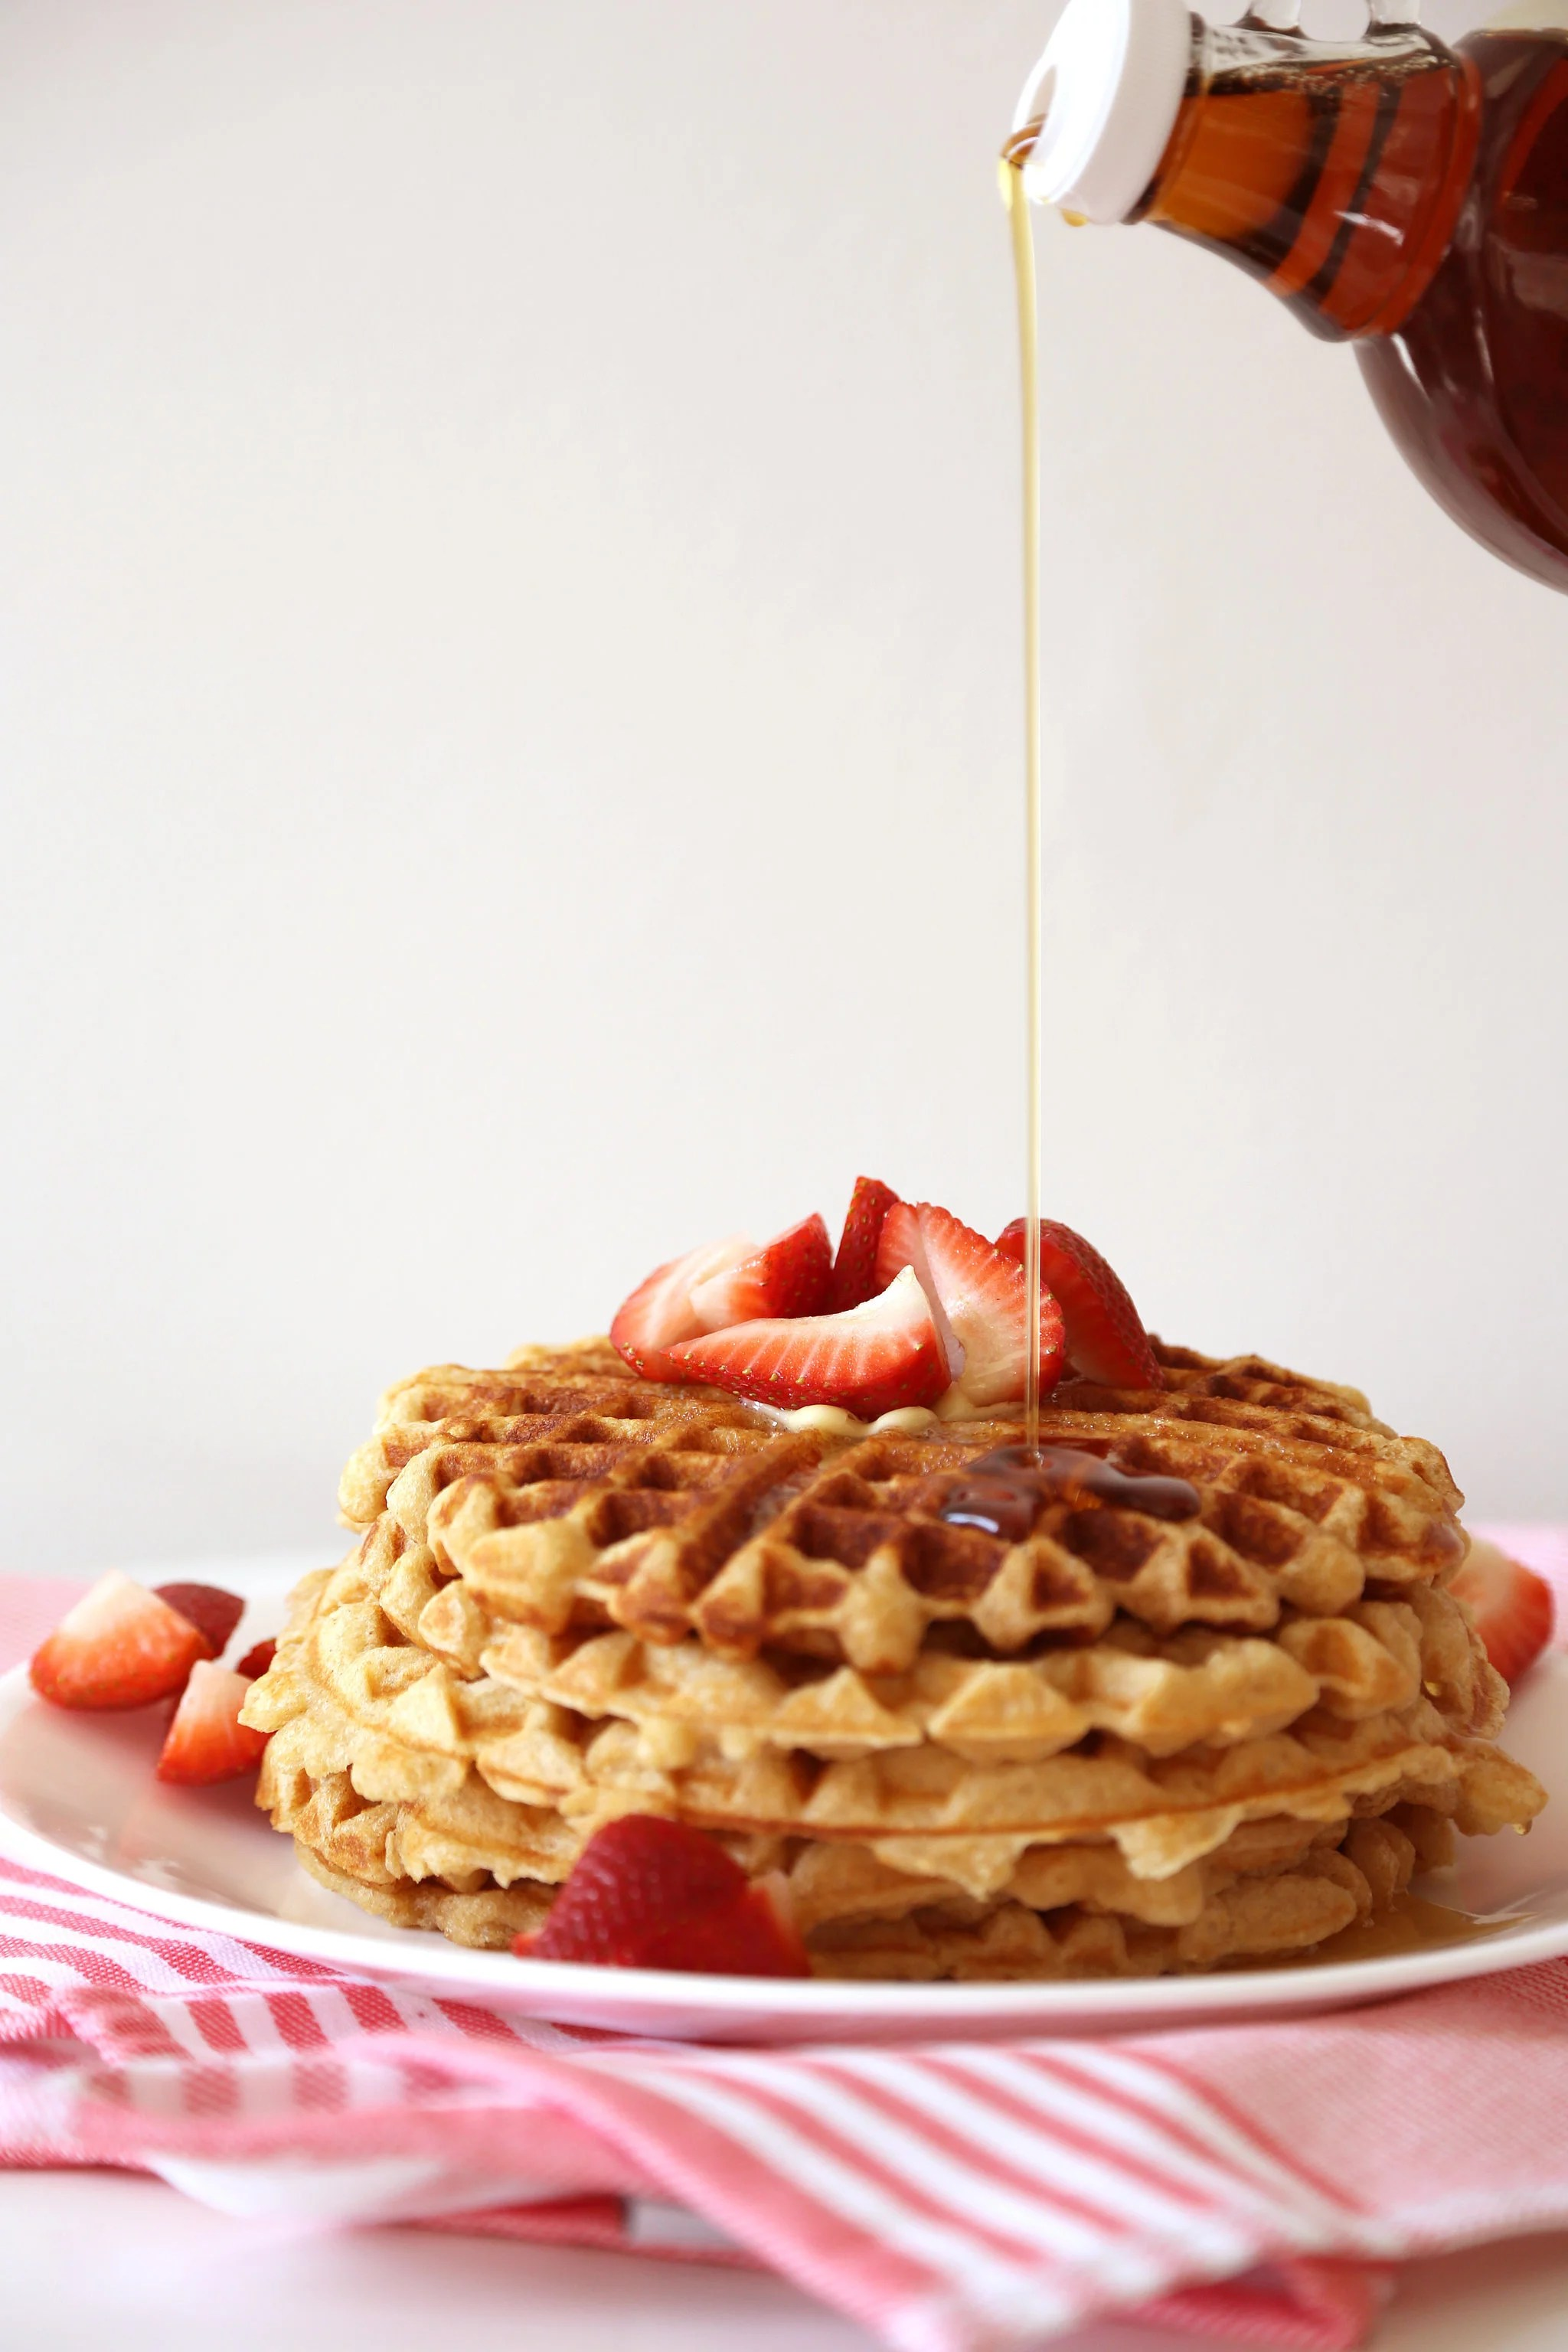 Double Start Whipping Up How Chefs Make Waffles Popsugar Food Waffles Seem So But Small Changes Can Make Big Differences Aka S Resorting To Premade Stuff nice food Pioneer Woman Waffles